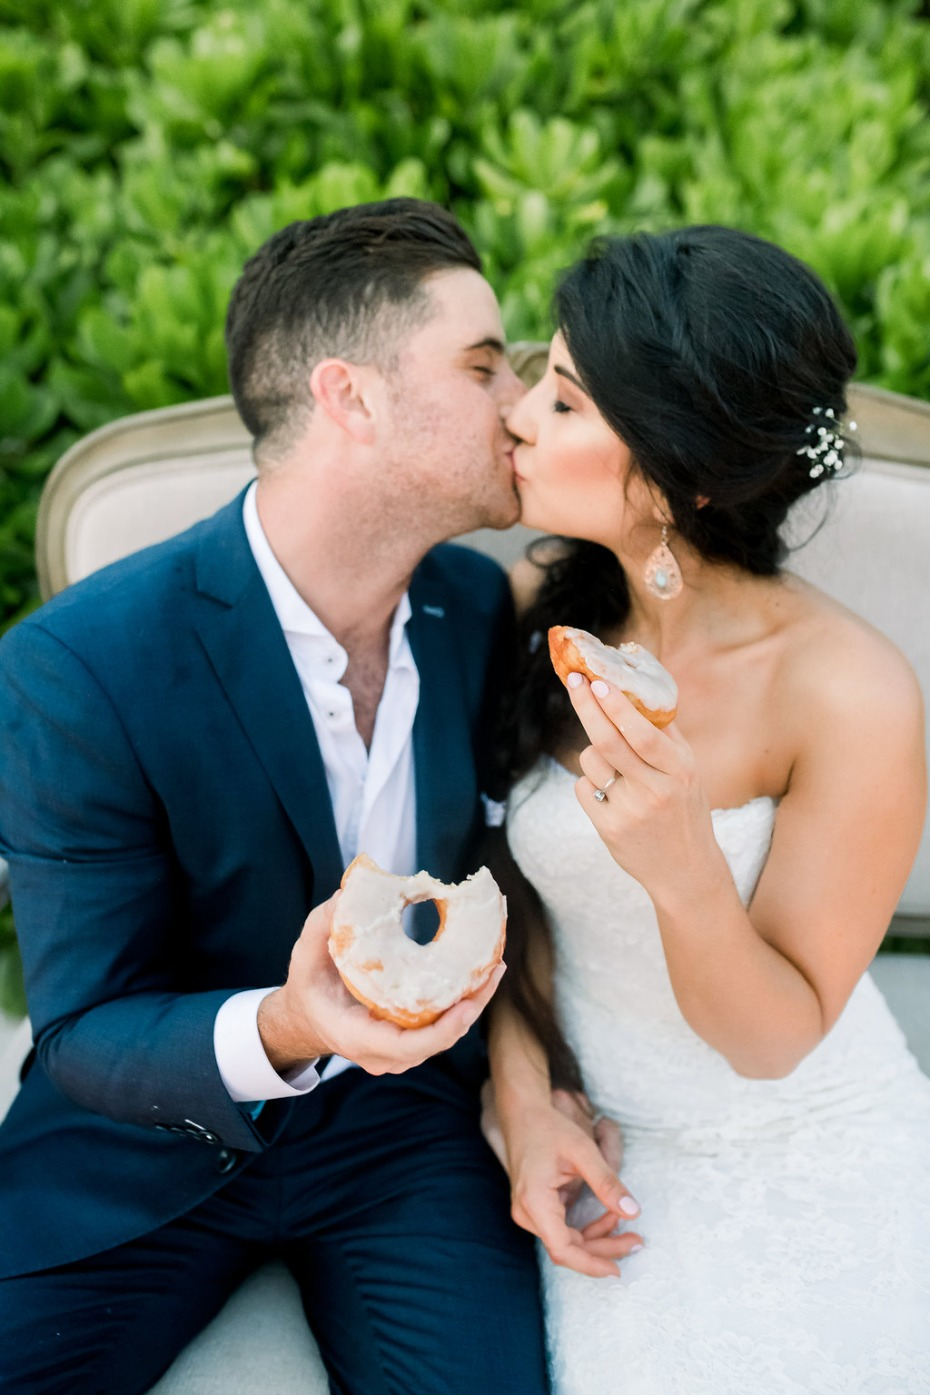 Cayman Island Beach Wedding Couple Kissing with Doughnuts